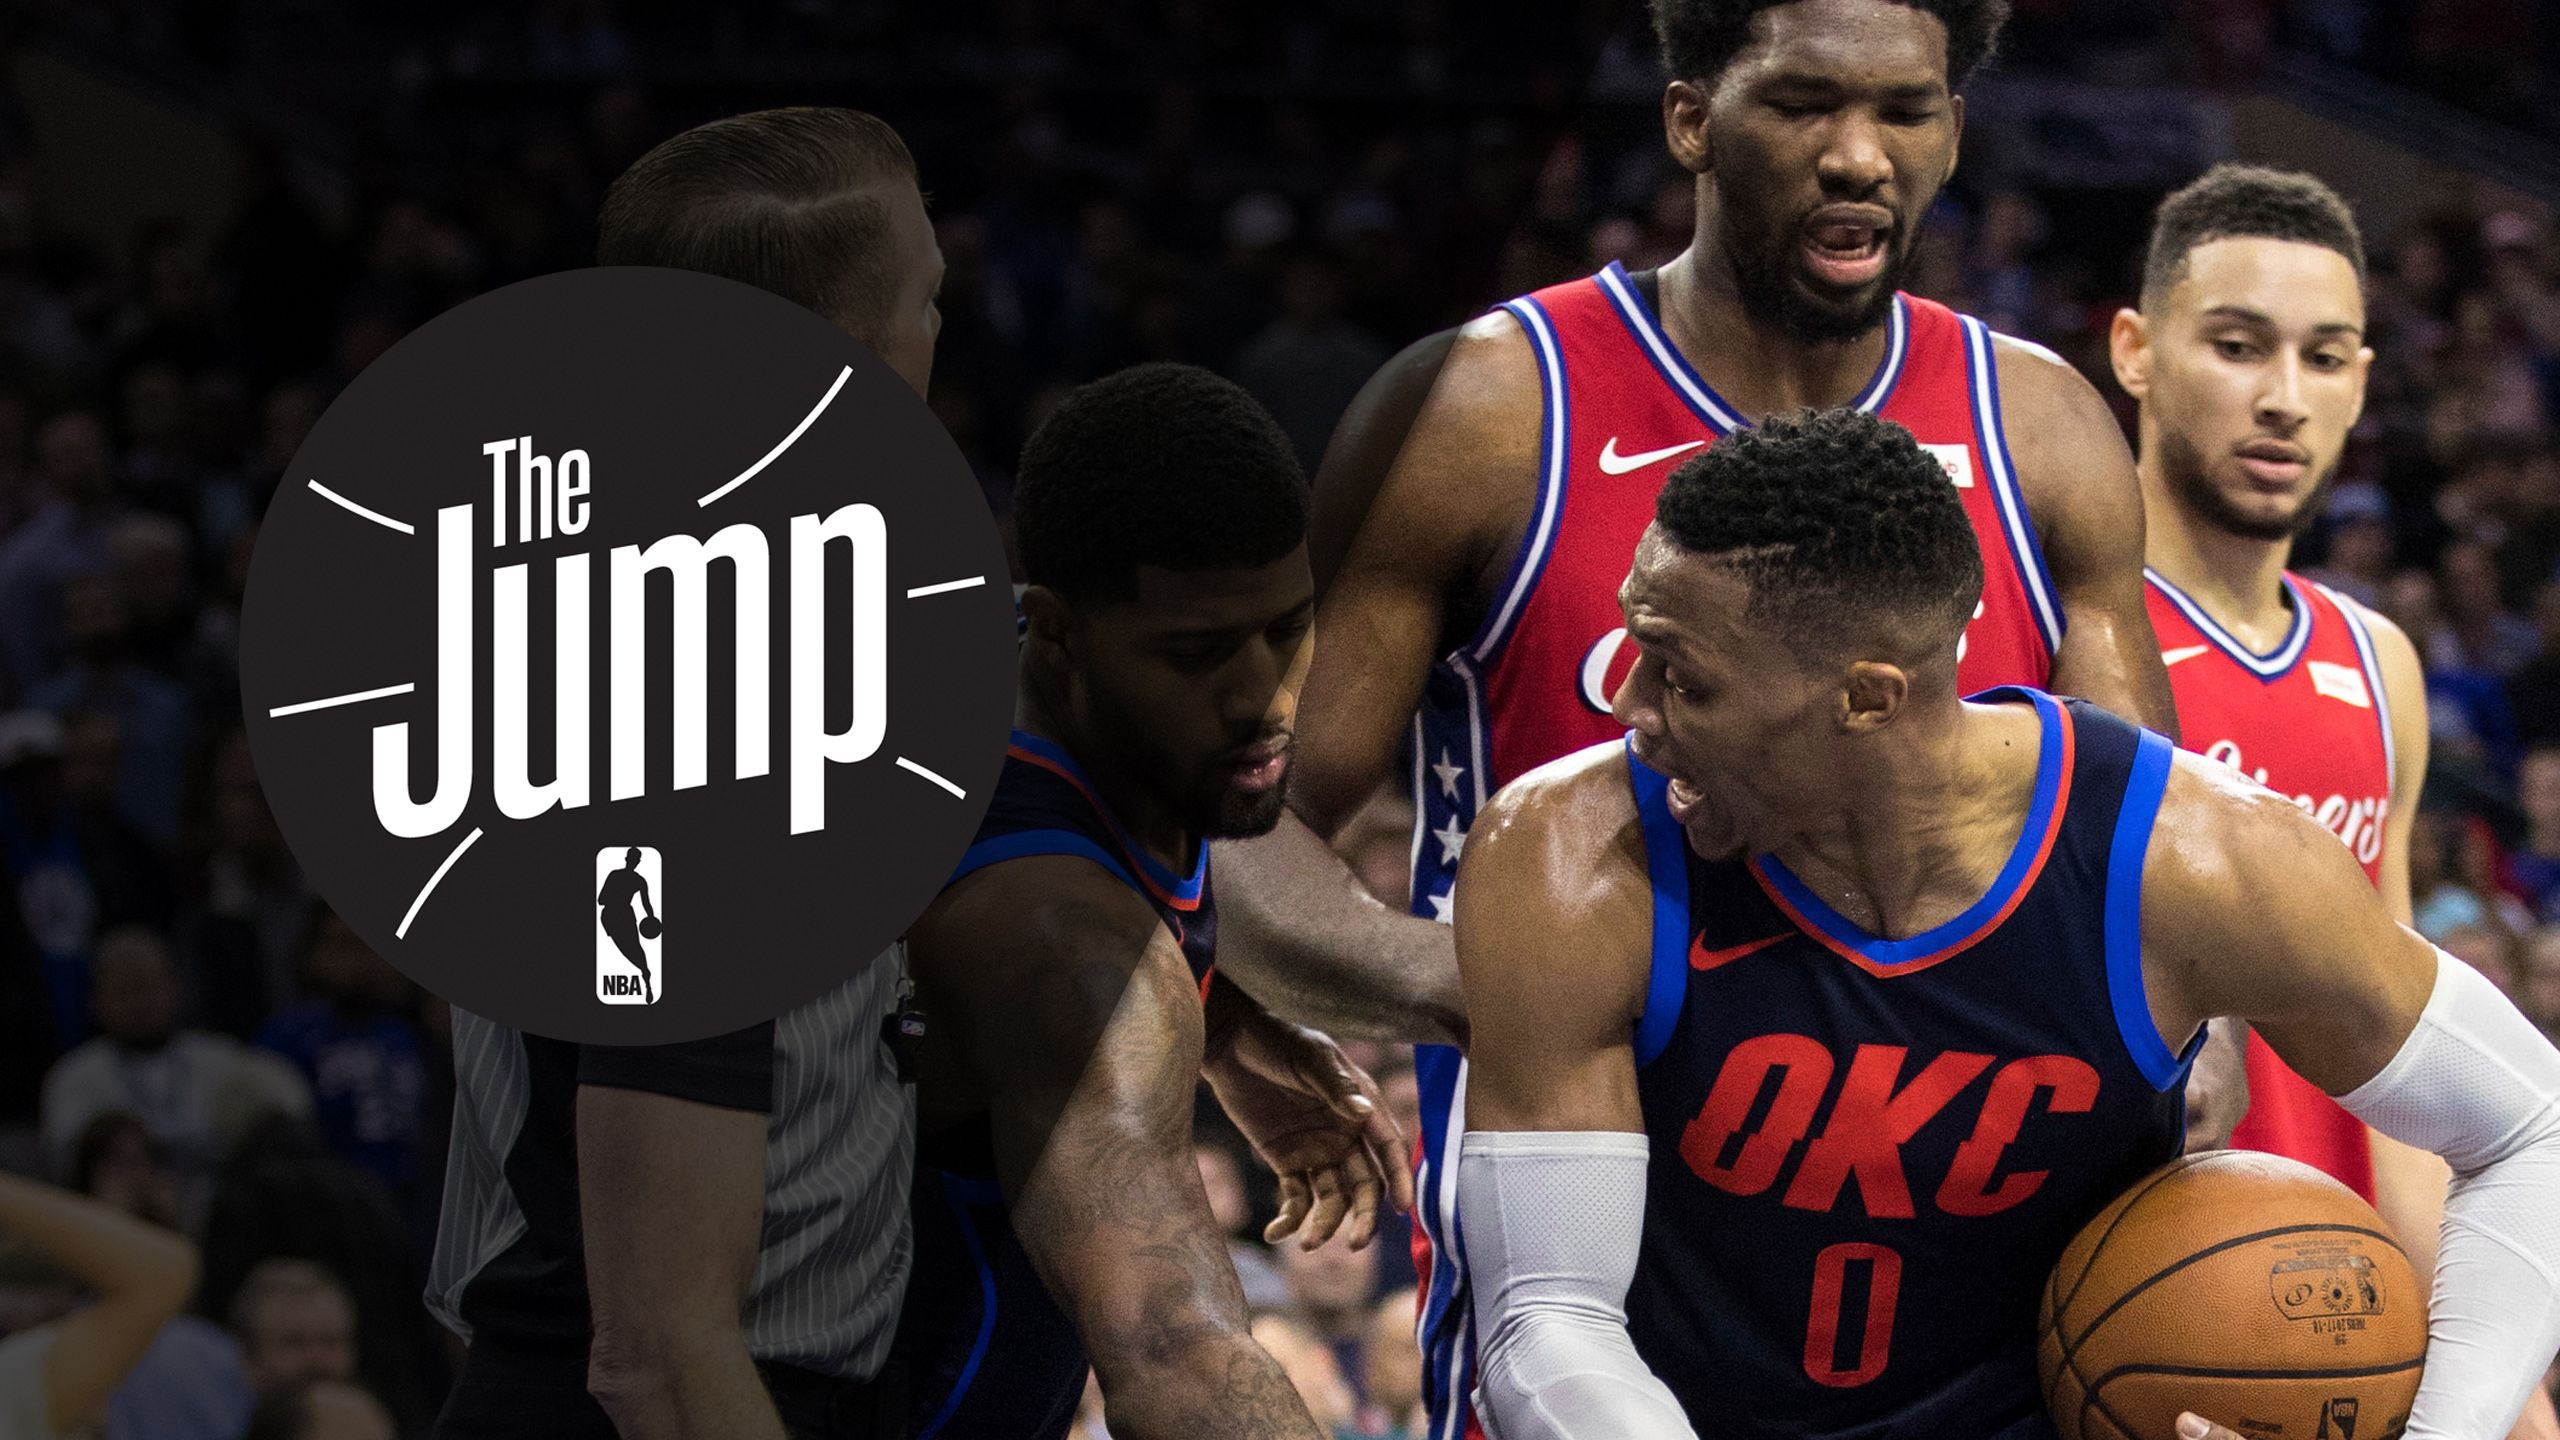 Mon, 12/18 - NBA: The Jump